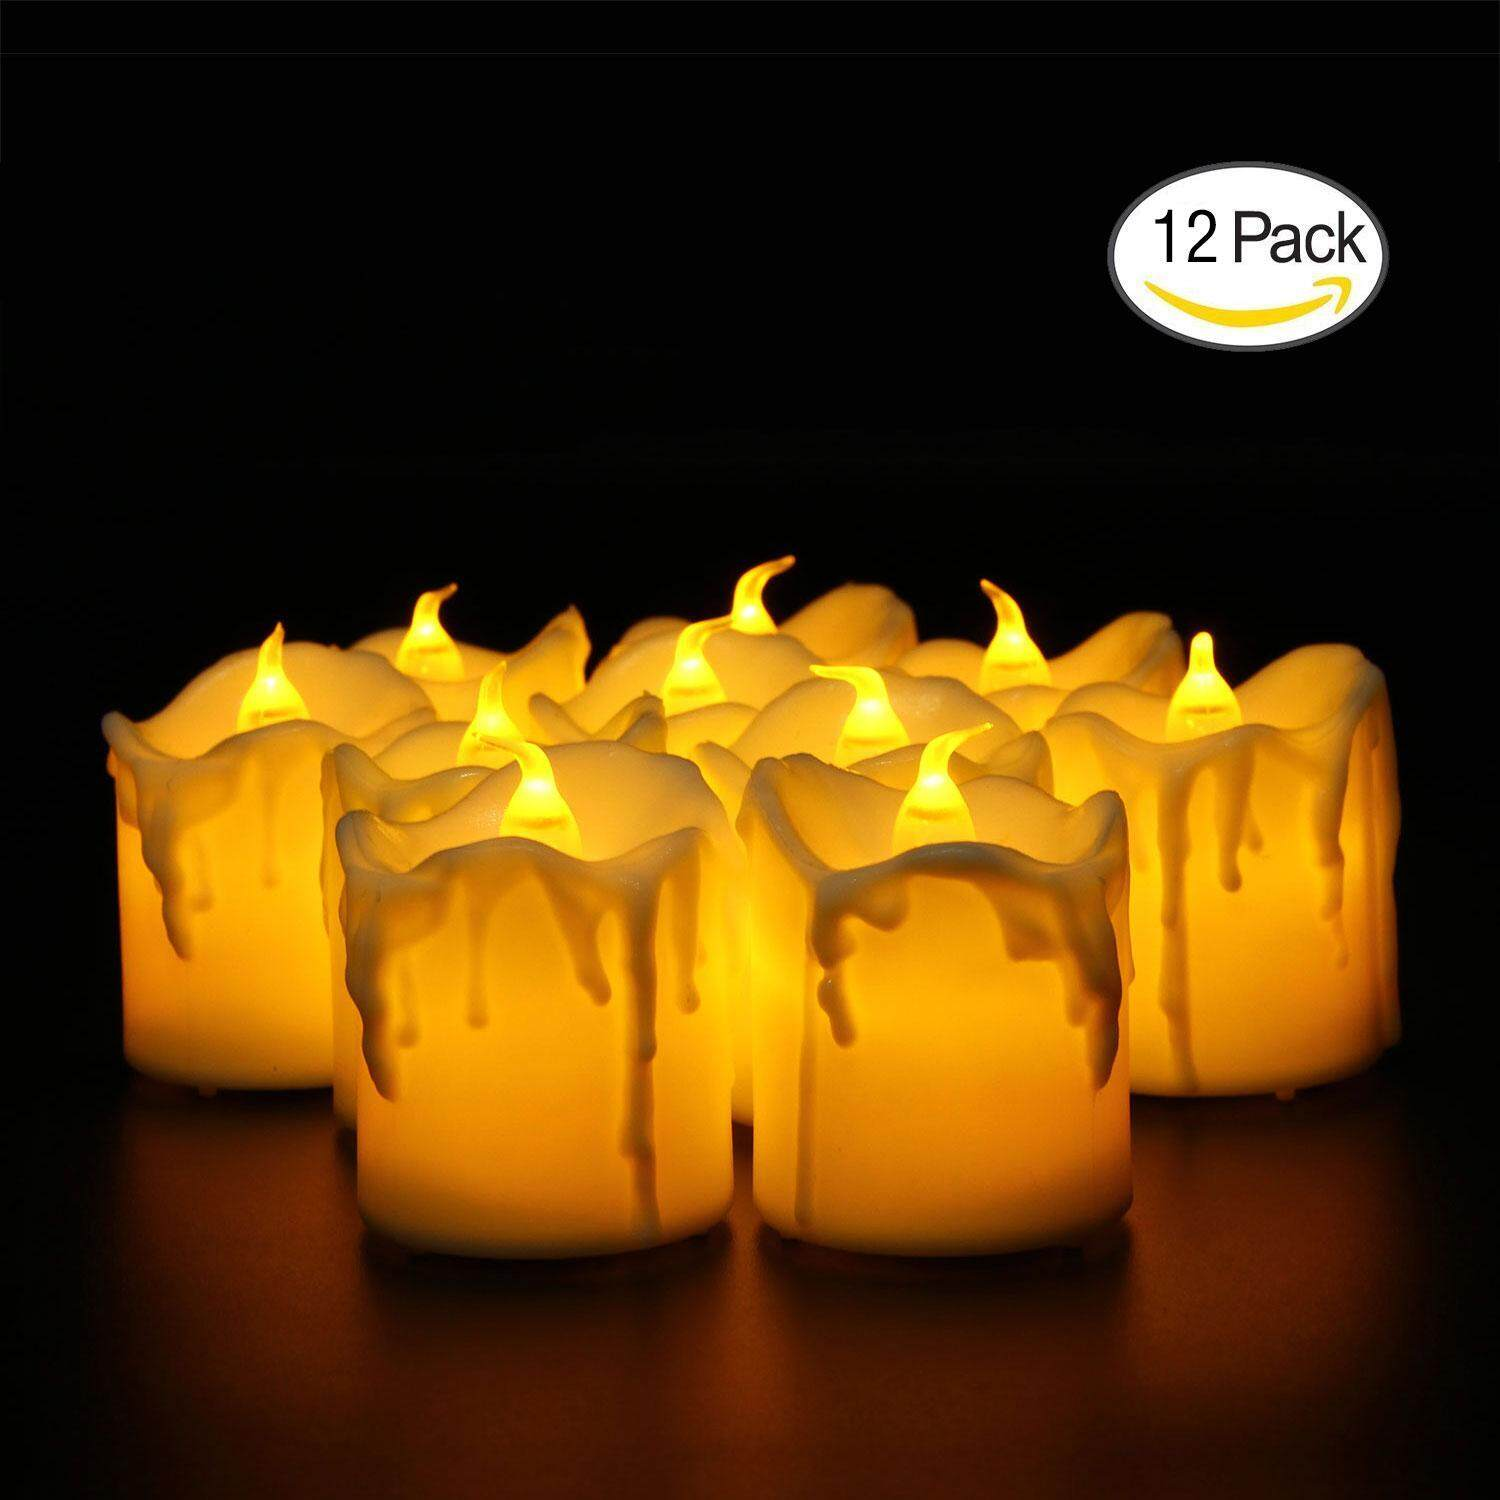 OrzBuy LED Tea Lights Candles,Flameless Candles Operated LED Candles, Flickering Tealight Candles,